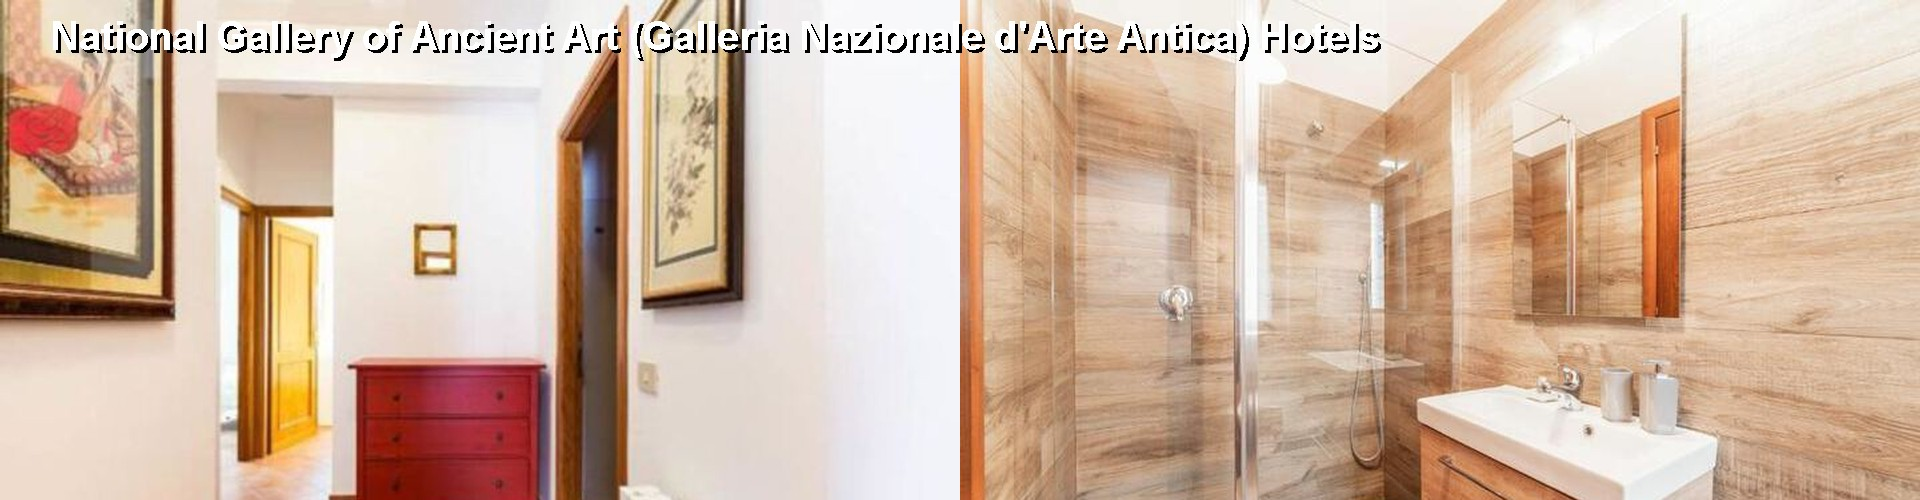 5 Best Hotels near National Gallery of Ancient Art (Galleria Nazionale d'Arte Antica)